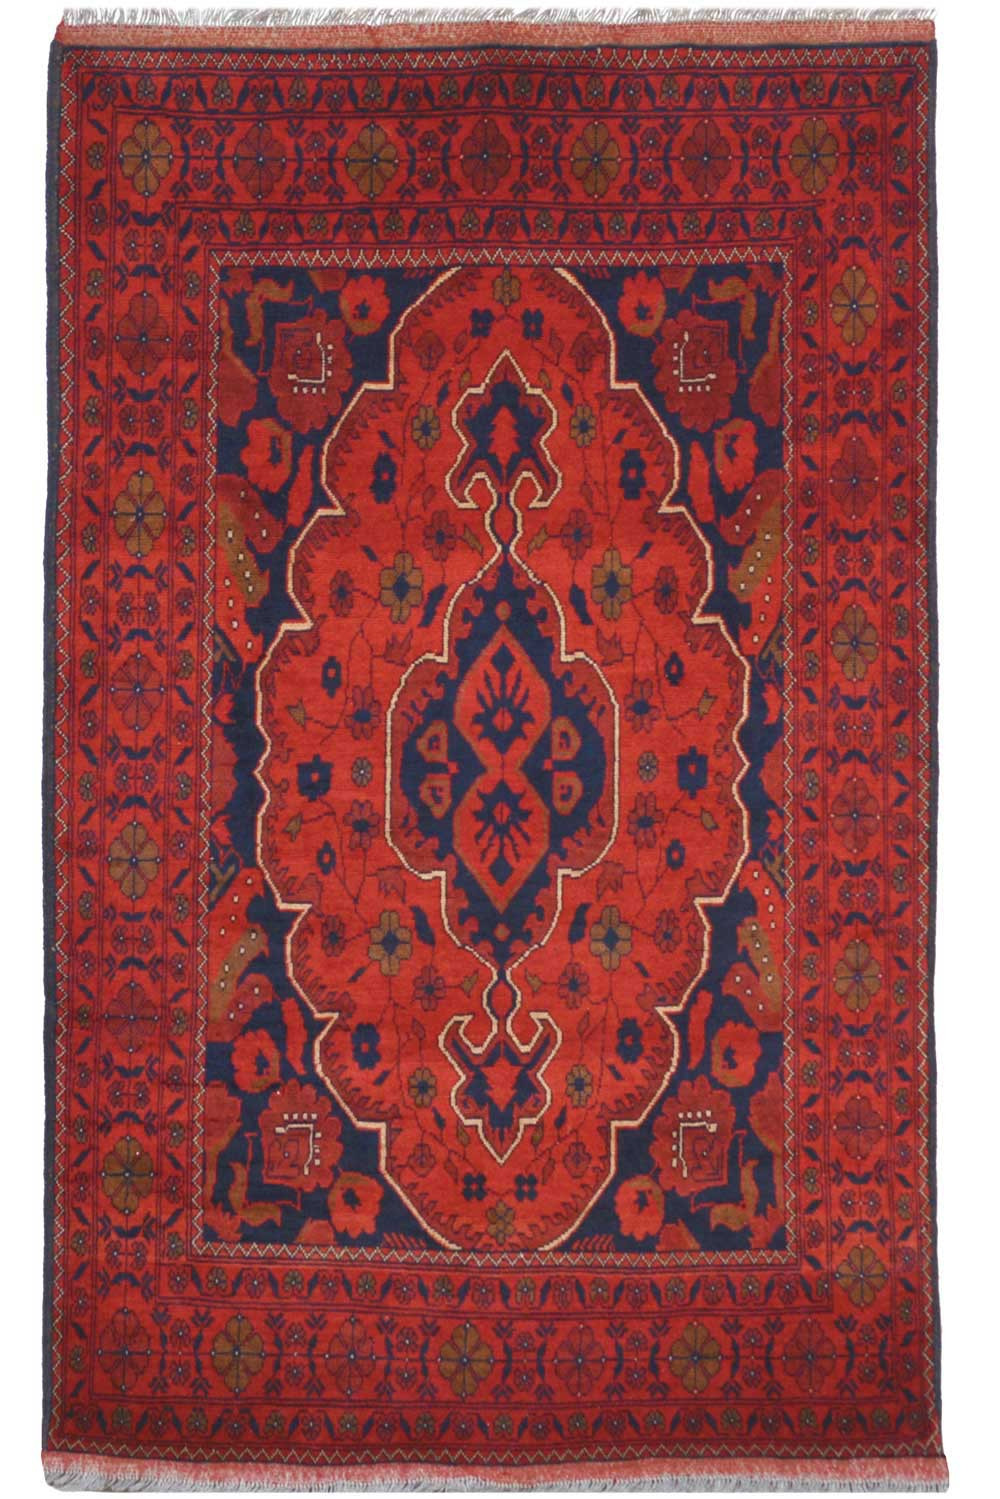 Shop Royal Khan Afghan Rug Online To Give A Royal Look To